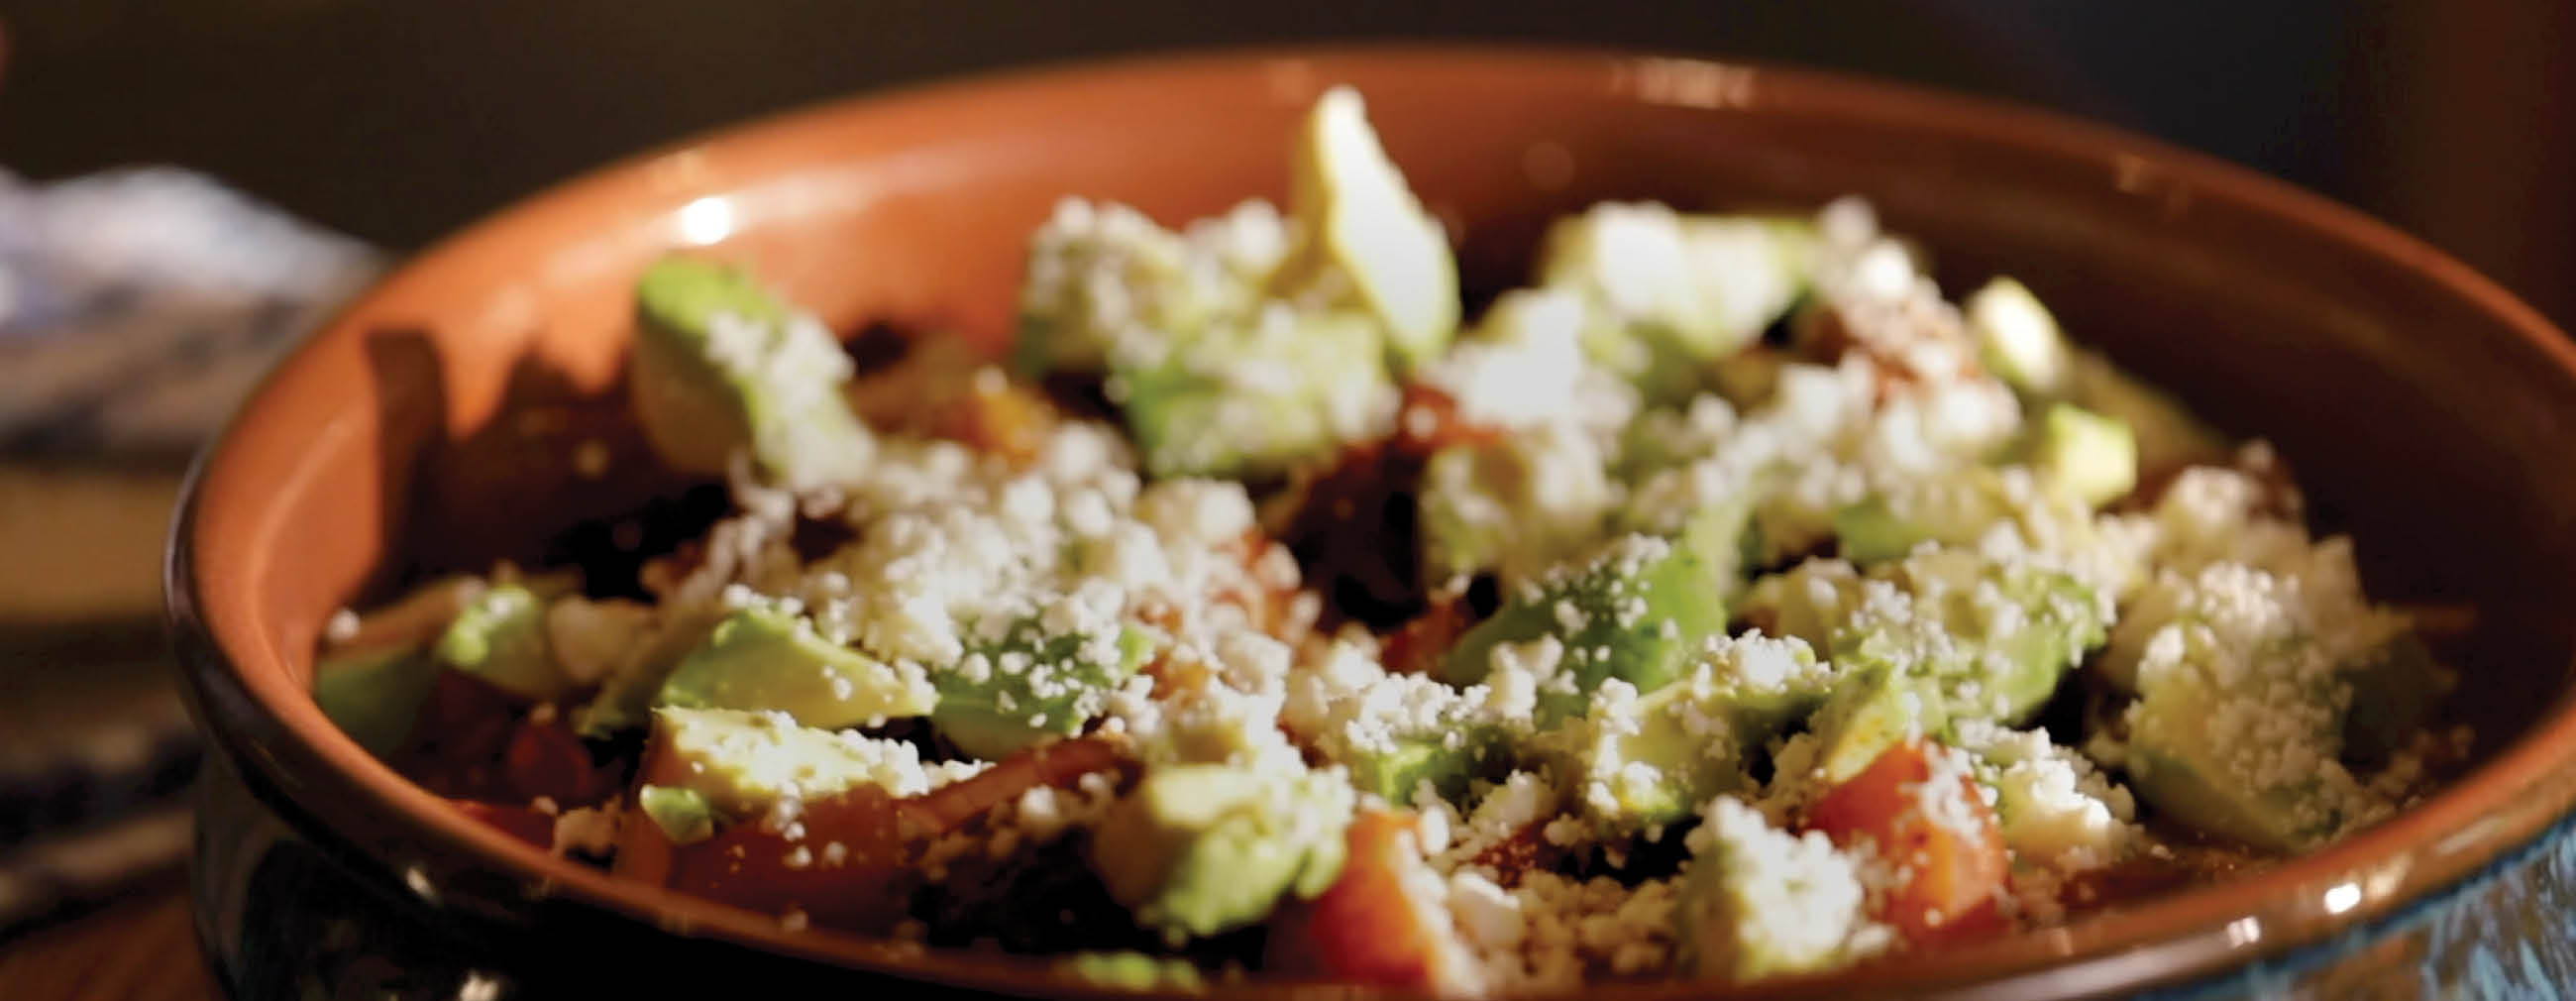 Pork Tinga with Potatoes, Avocado, and Fresh Cheese